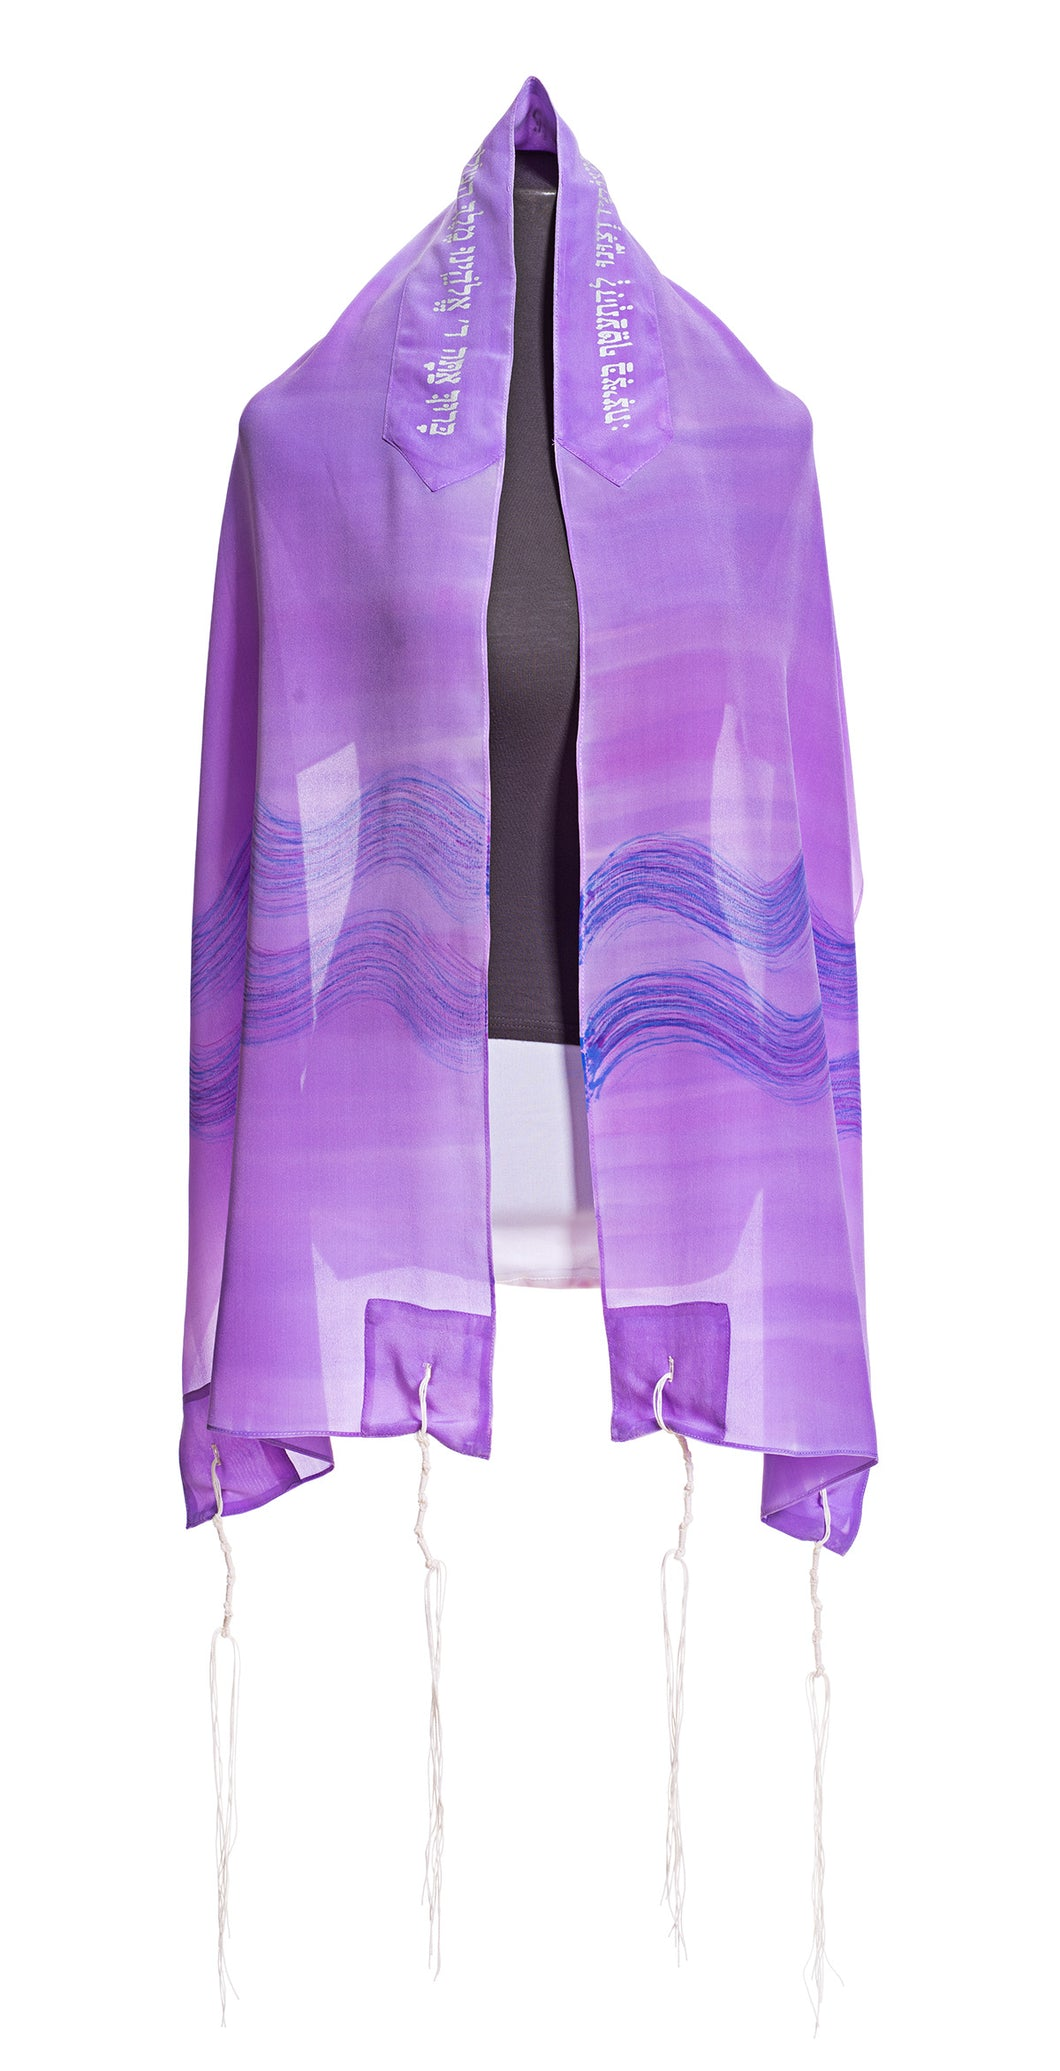 Purple Tallit With Wave Decoration, Bat Mitzvah Tallit, Silk Tallit, girls tallit, womens talit by Galilee Silks